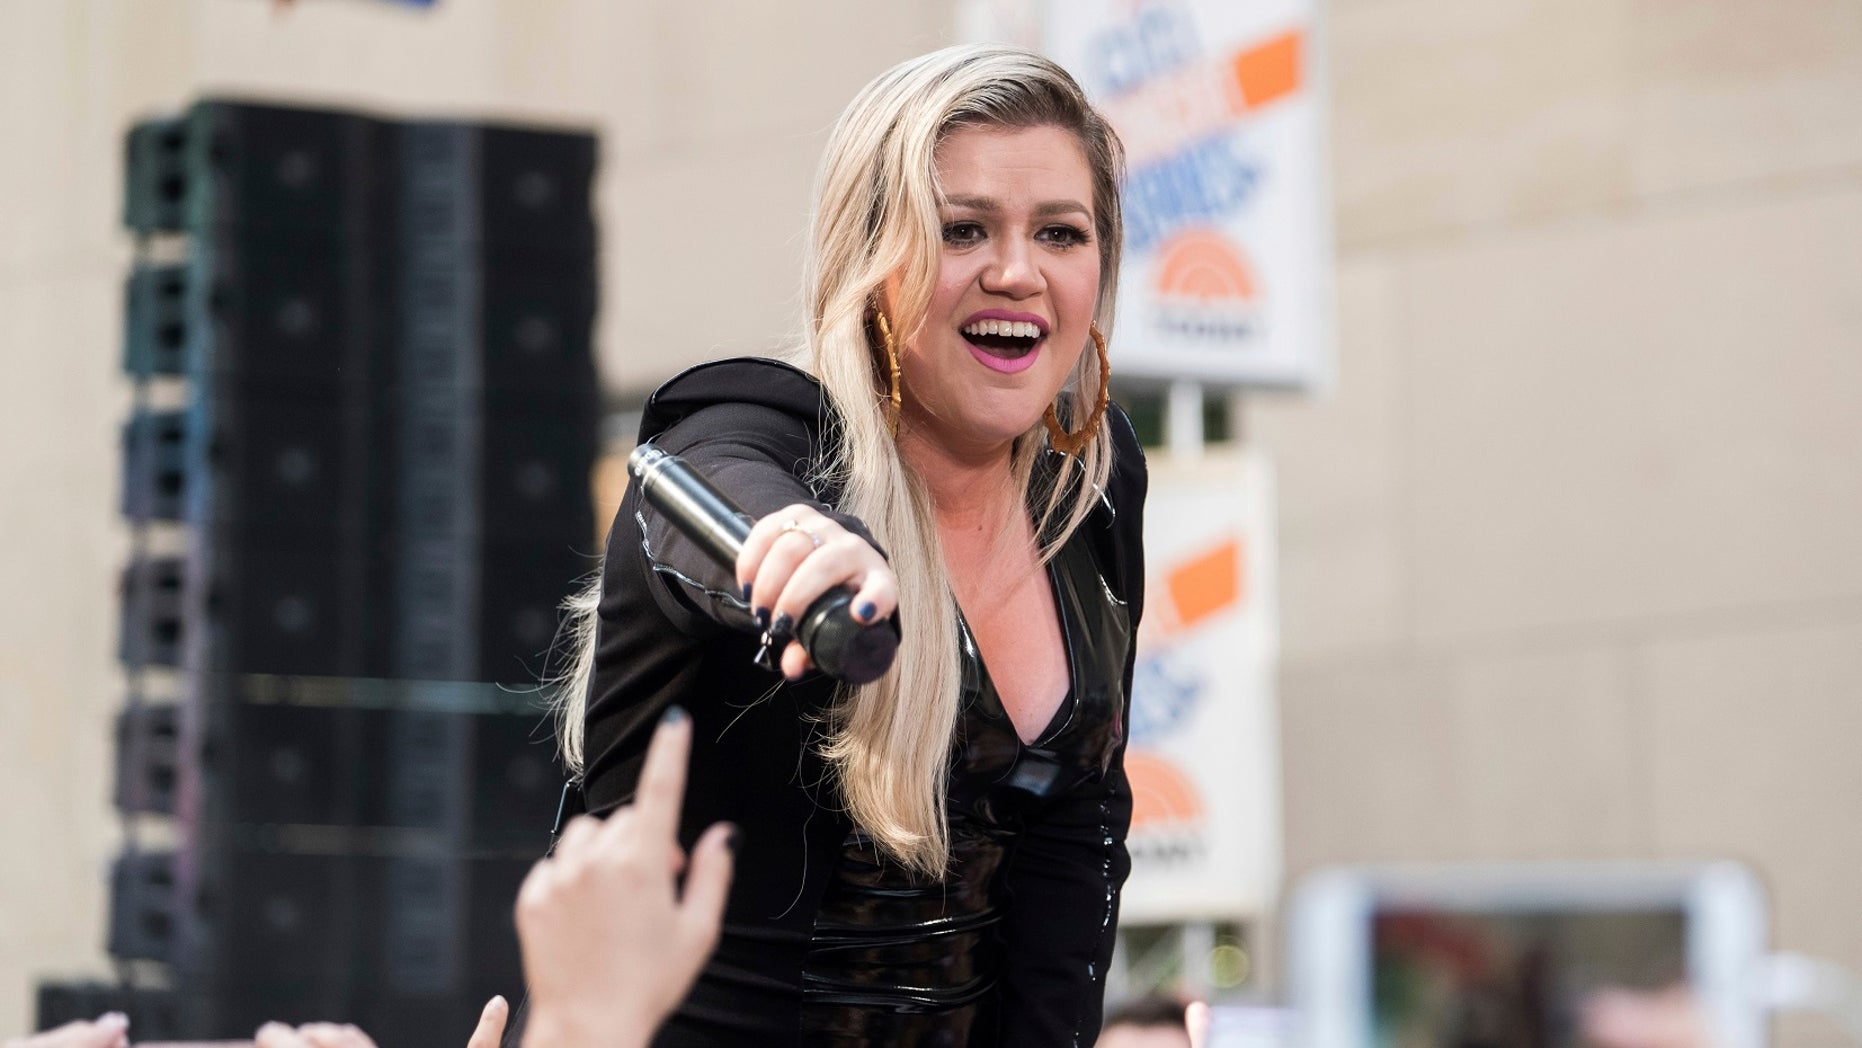 Kelly Clarkson recently lost 37 pounds.